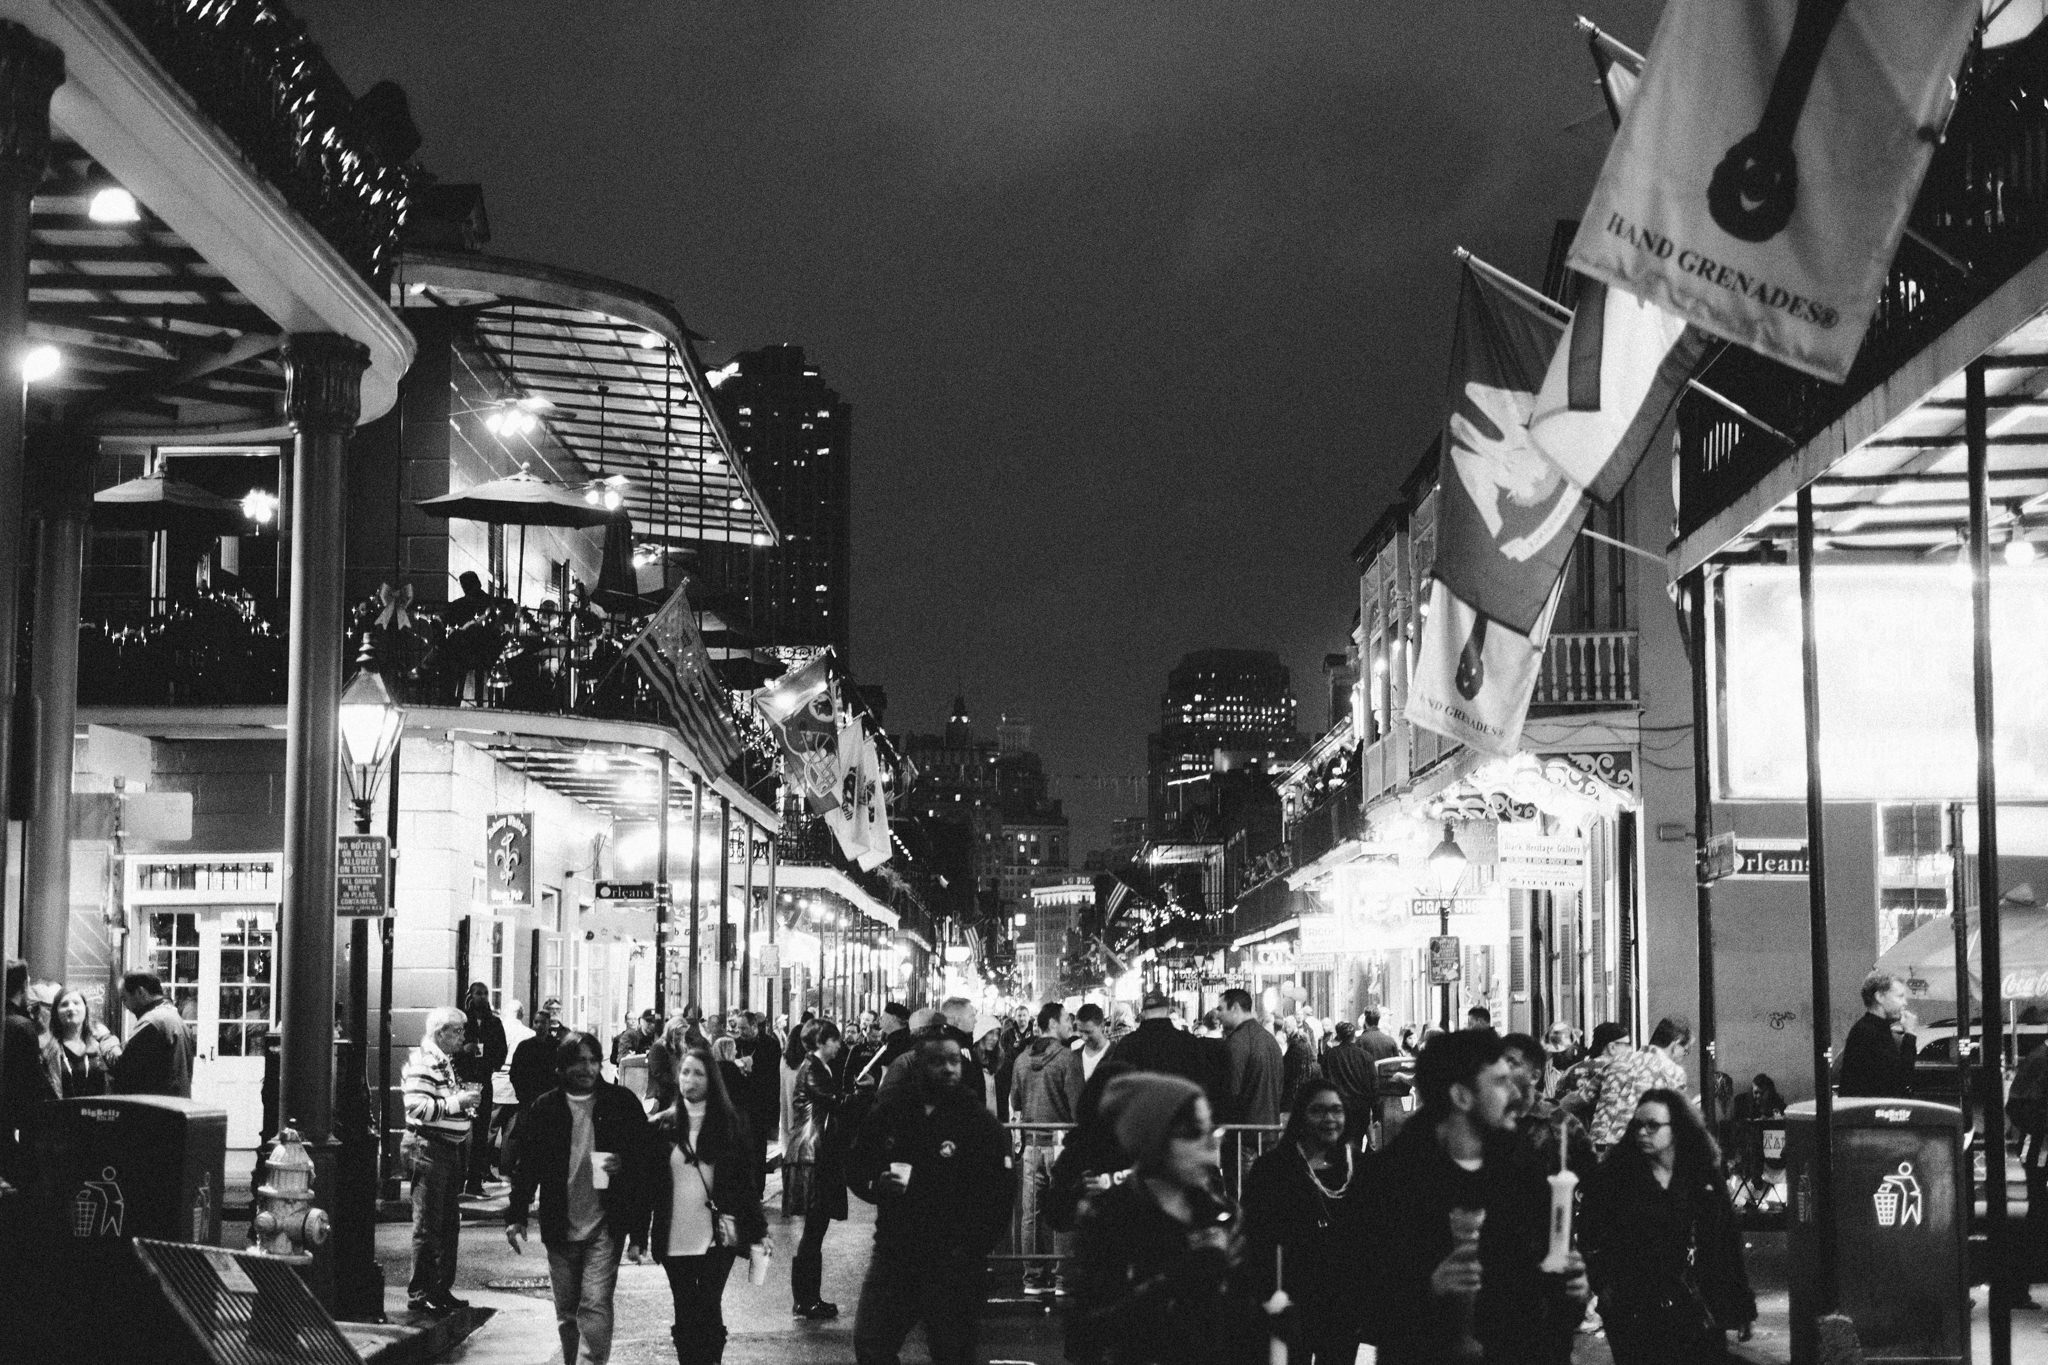 The only part of New Orleans I don't like is the hangover. Such an incredible place, unlike anywhere else I've been in the US.